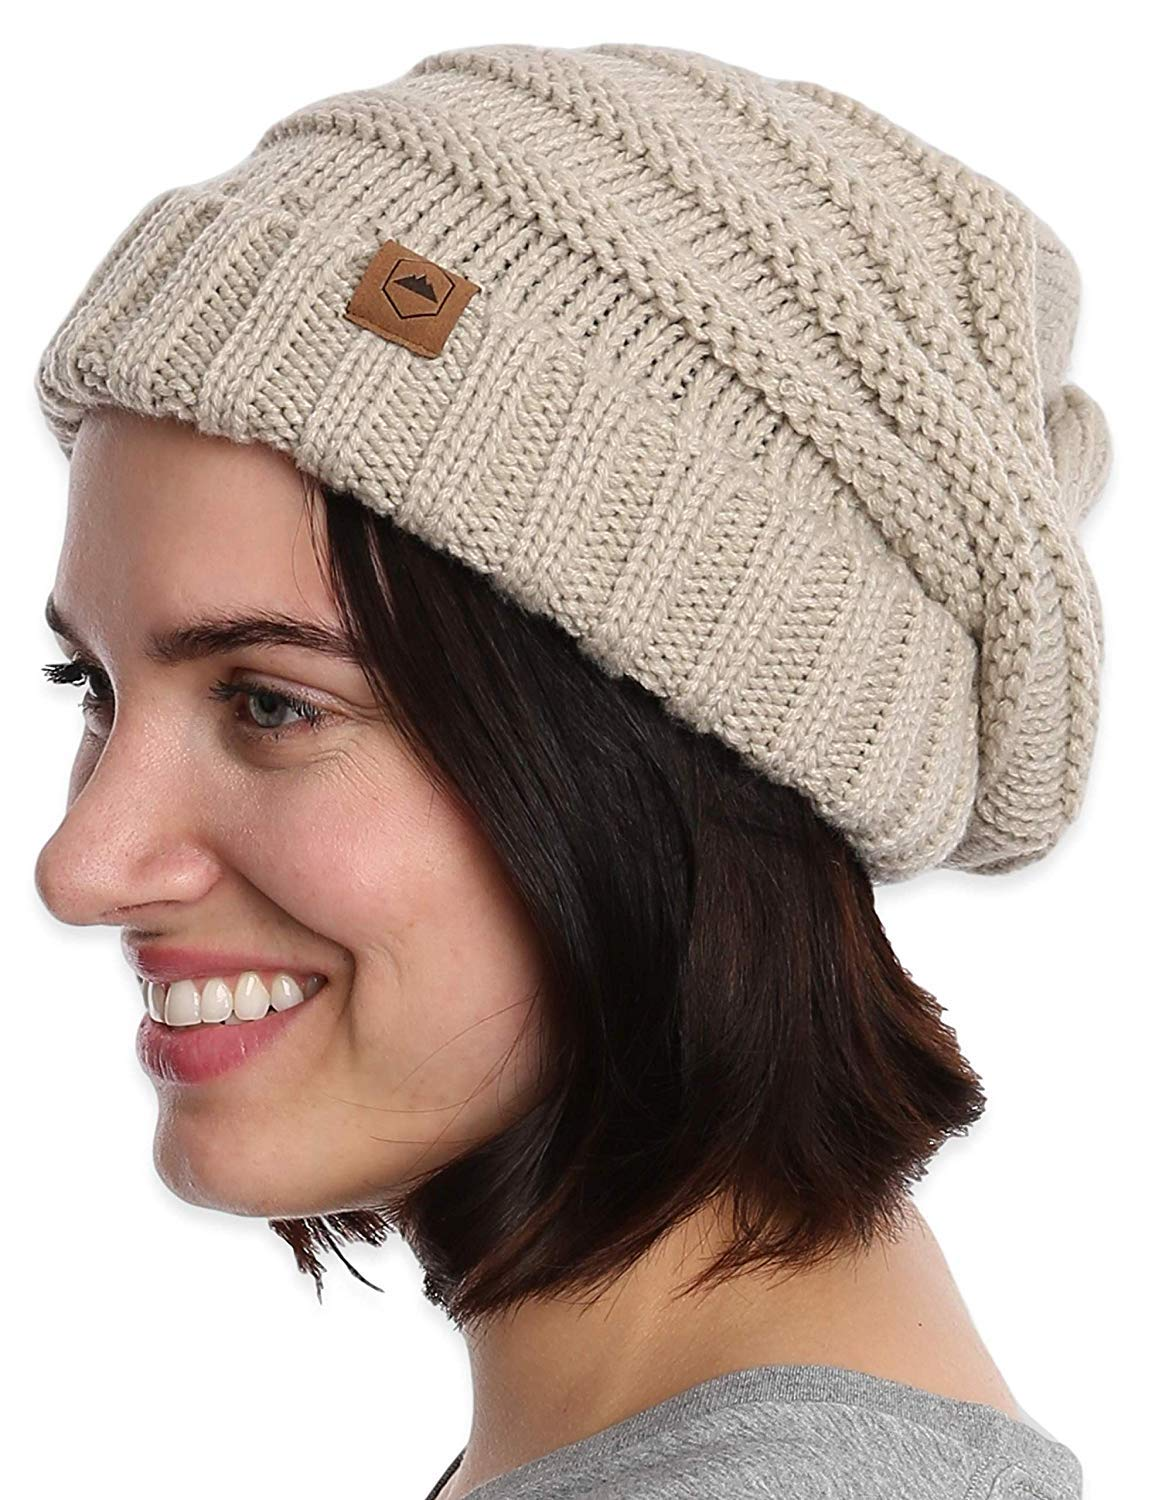 fadc4401ca14af Amazon.com: Slouchy Cable Knit Cuff Beanie - Chunky, Oversized Slouch  Beanie Winter Hats for Women - Stay Warm & Stylish - Serious Beanies for  Serious ...